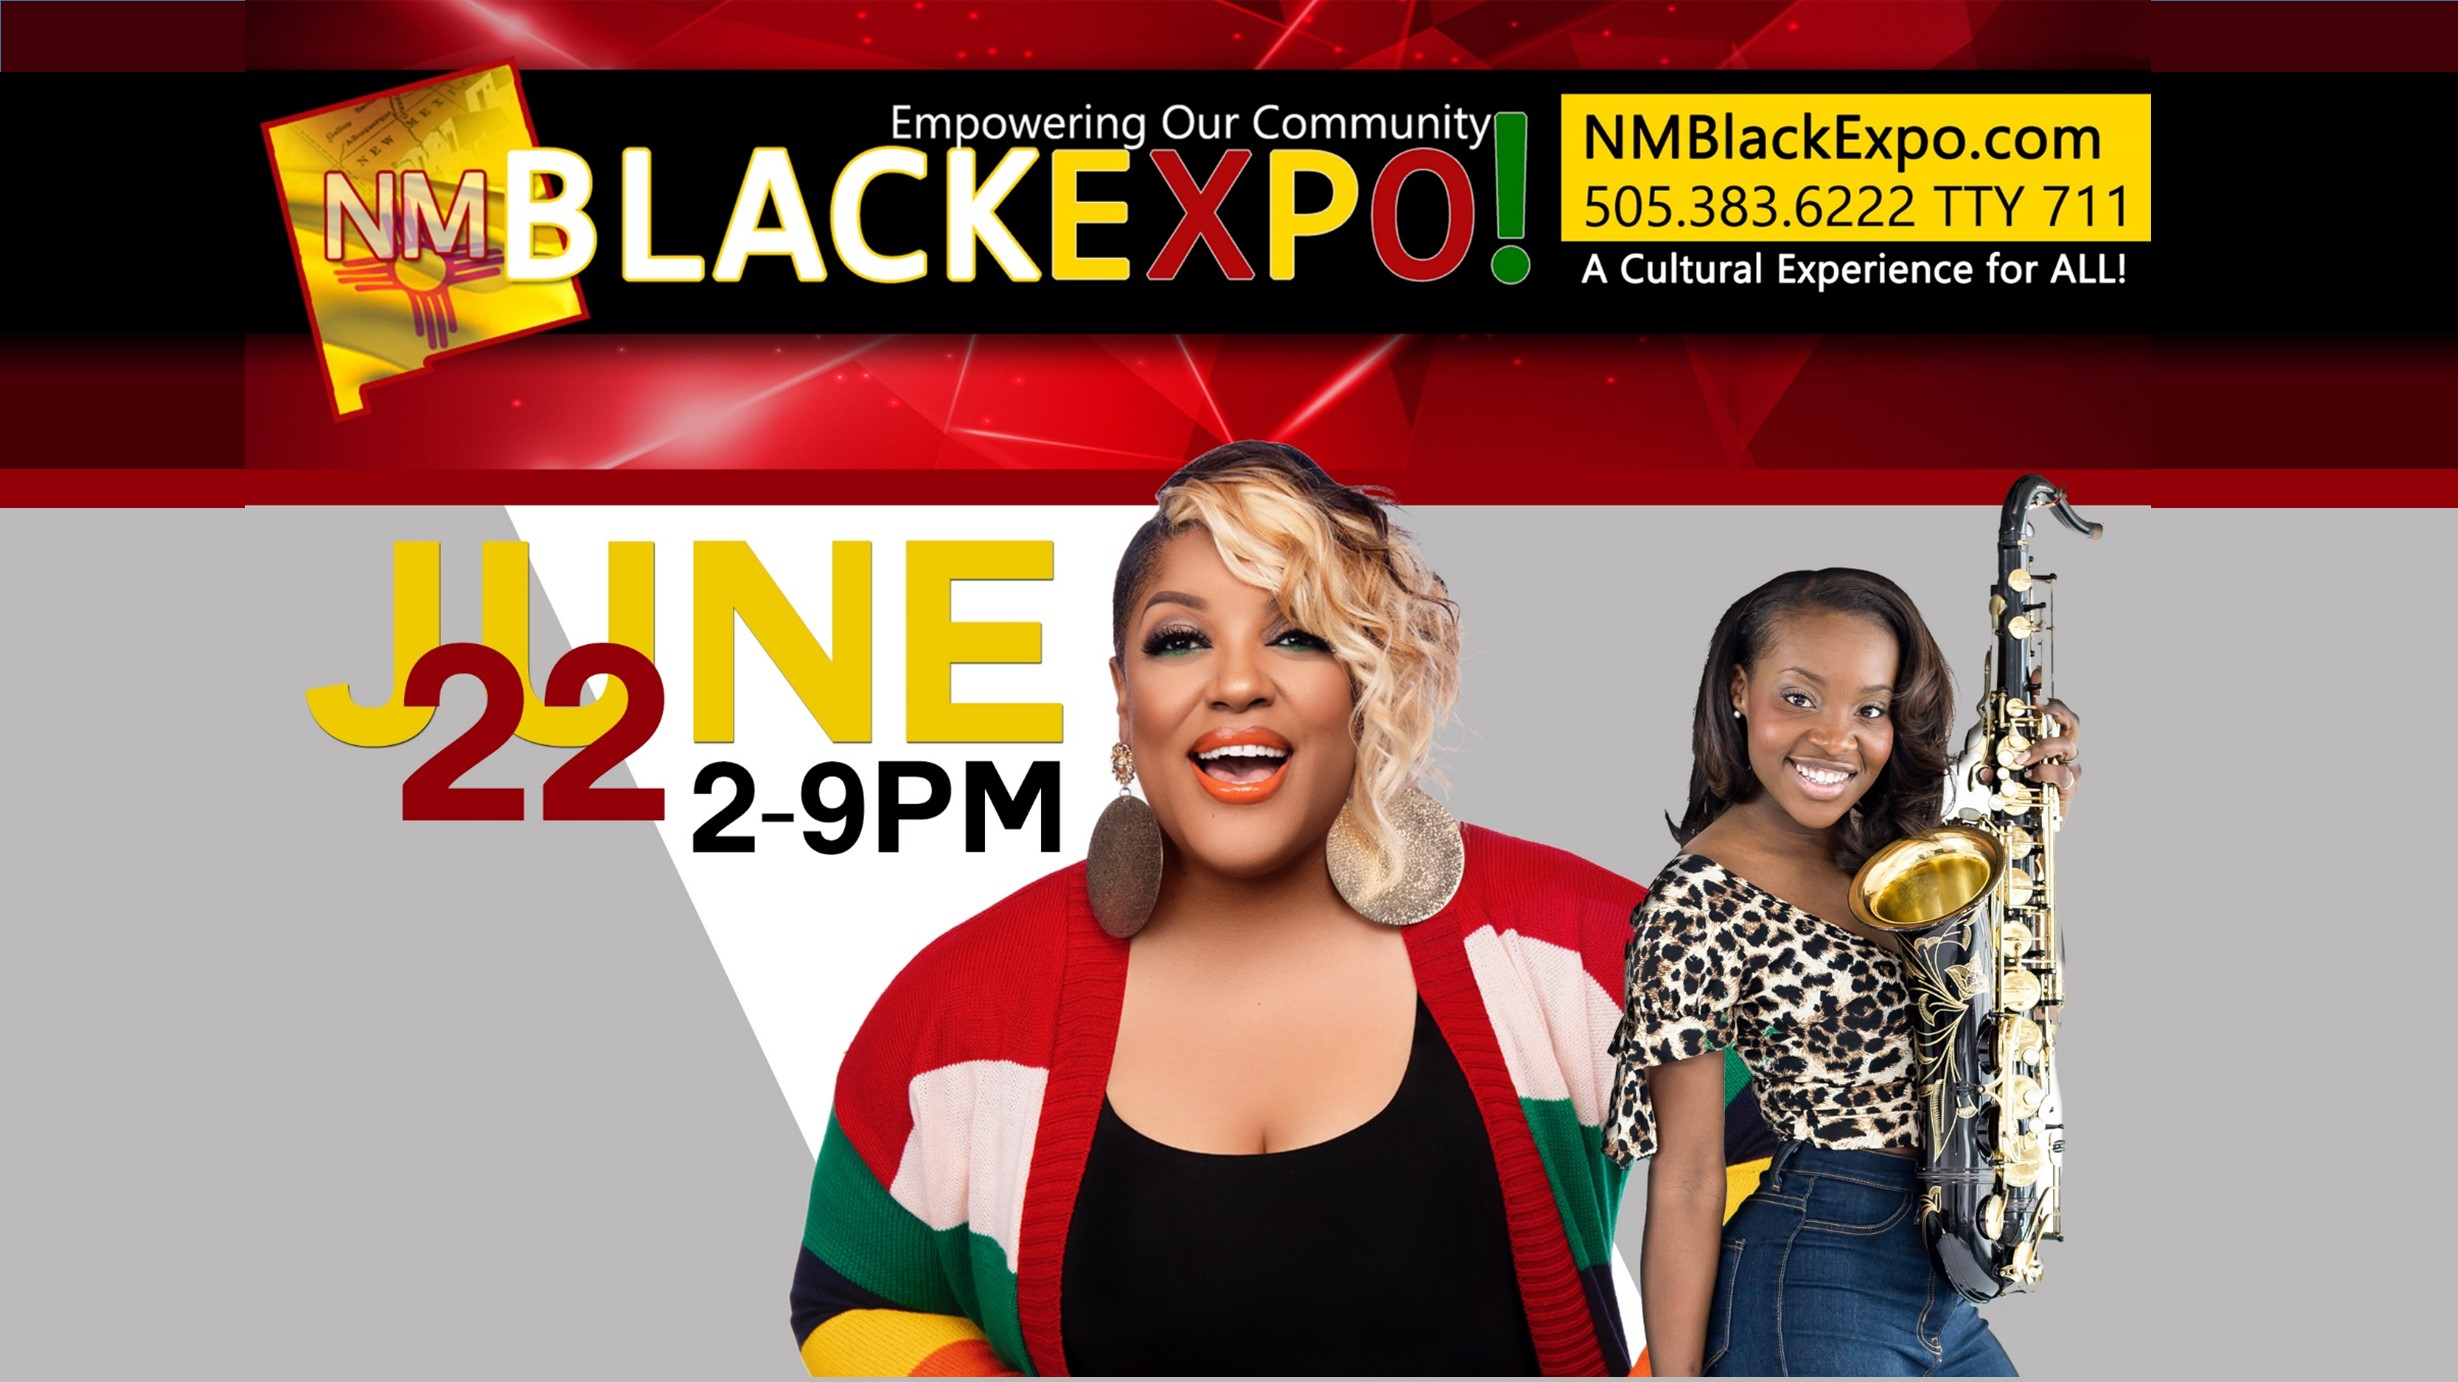 New Mexico Black Expo  2:00pm – 9:00pm NM Expo Villa Hispana Pavilion 324-398 San Pedro Drive Northeast Albuquerque, NM 87108 United States  Yorkshire Wellness Group: The School Arts Bldg. - Booth #10  CULTURAL EXTRAVAGANZA BLACK BUSINESS TRADE FAIR KIDS' CORNER CULTURAL FOODS NATIONAL/LOCAL ENTERTAINMENT GREEK STEP SHOW